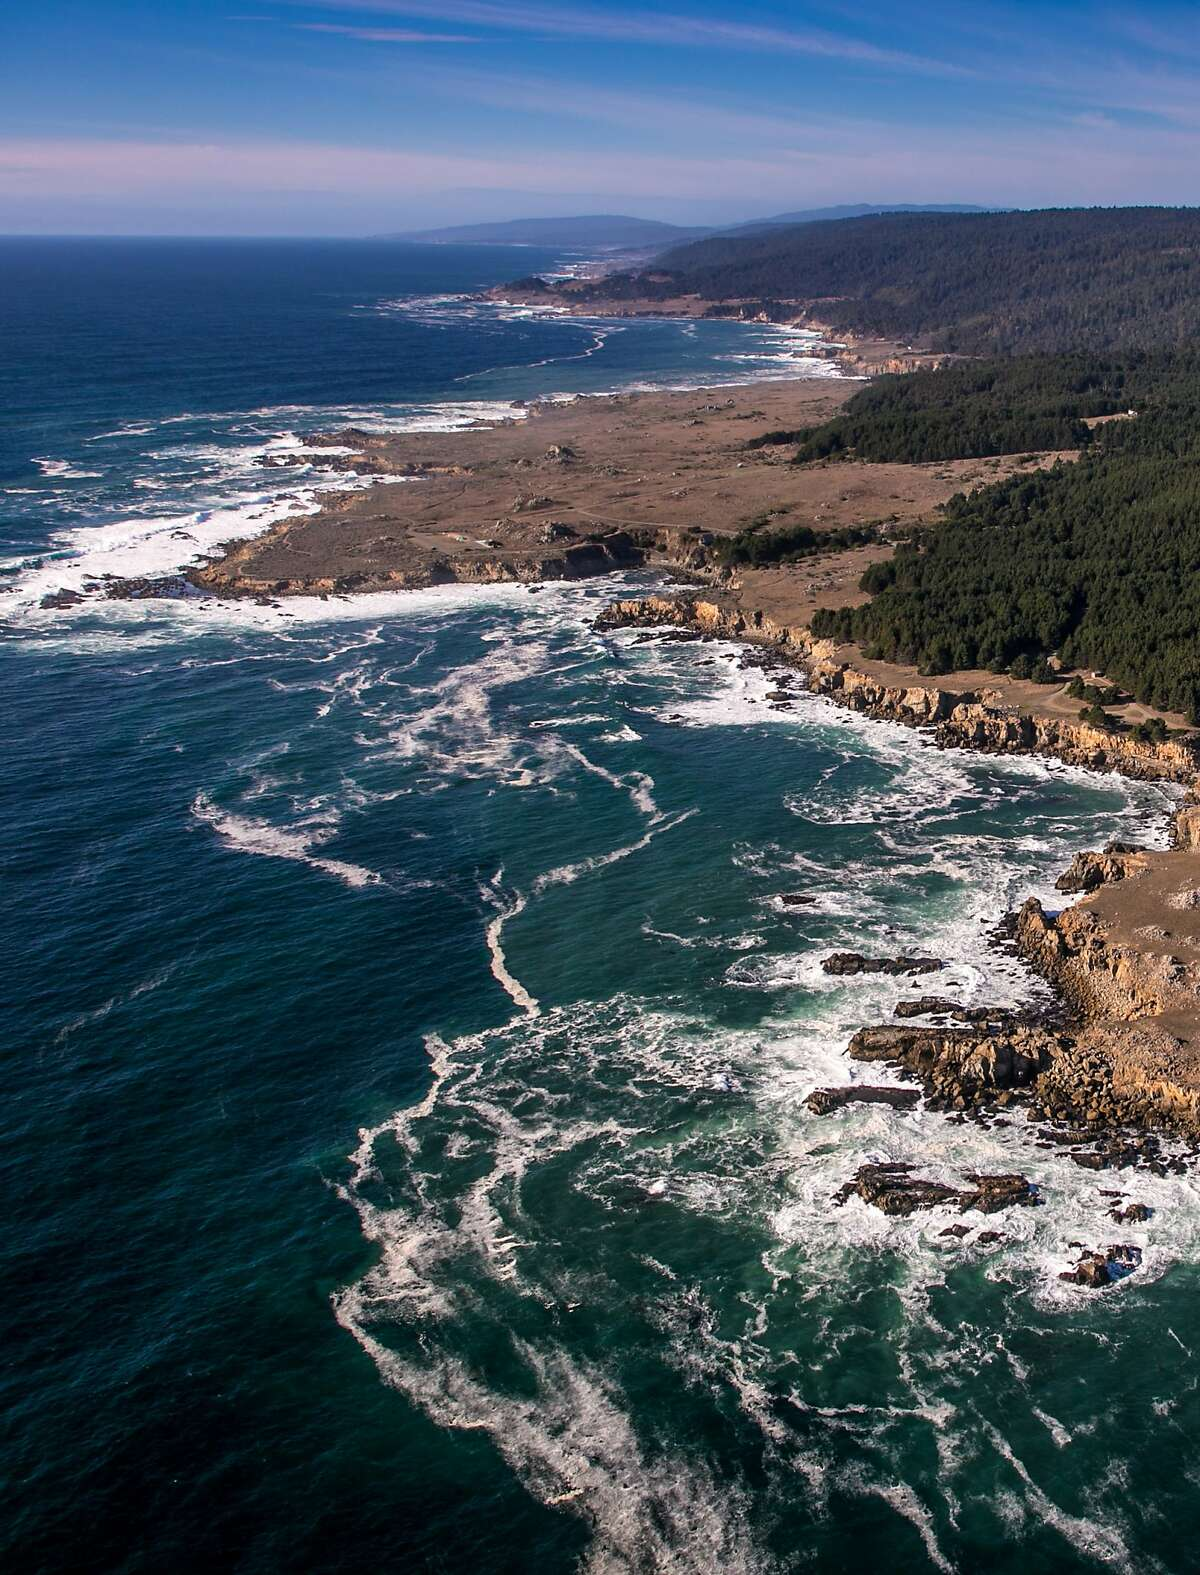 JENNER, CA - OCTOBER 21: The rocky Pacific Ocean coastline is viewed on October 14, 2014, near Jenner, California. Located one hour north of San Francisco, Sonoma County is the largest wine producer on California's North Coast and is visited by more than 7 million tourists each year. (Photo by George Rose/Getty Images)